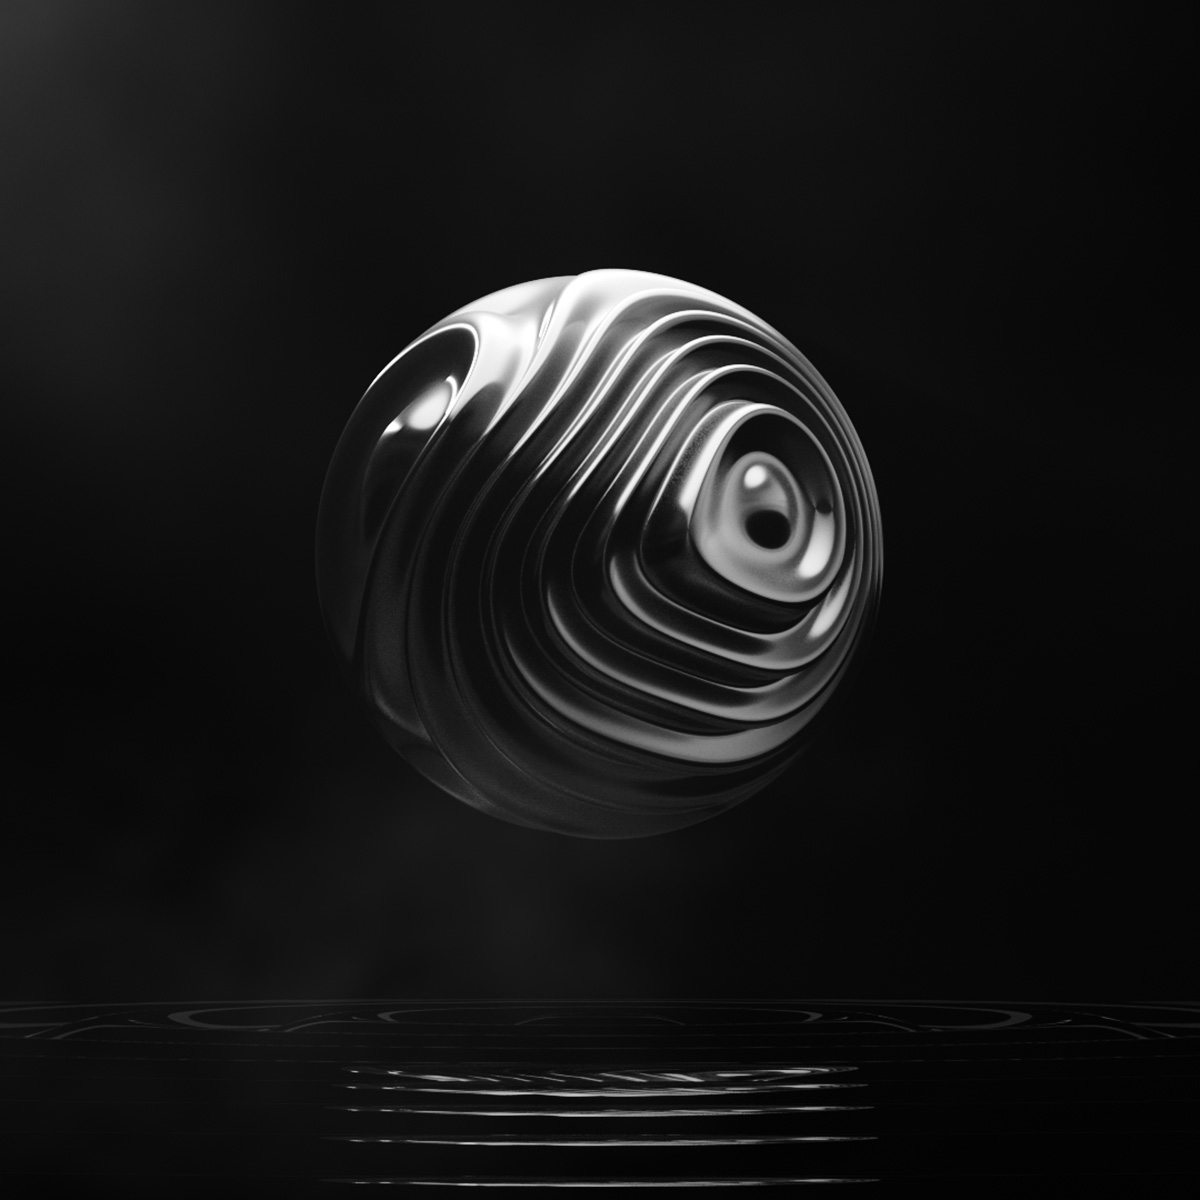 Dark Matter abstract wavy 3d CGI rendering on black background